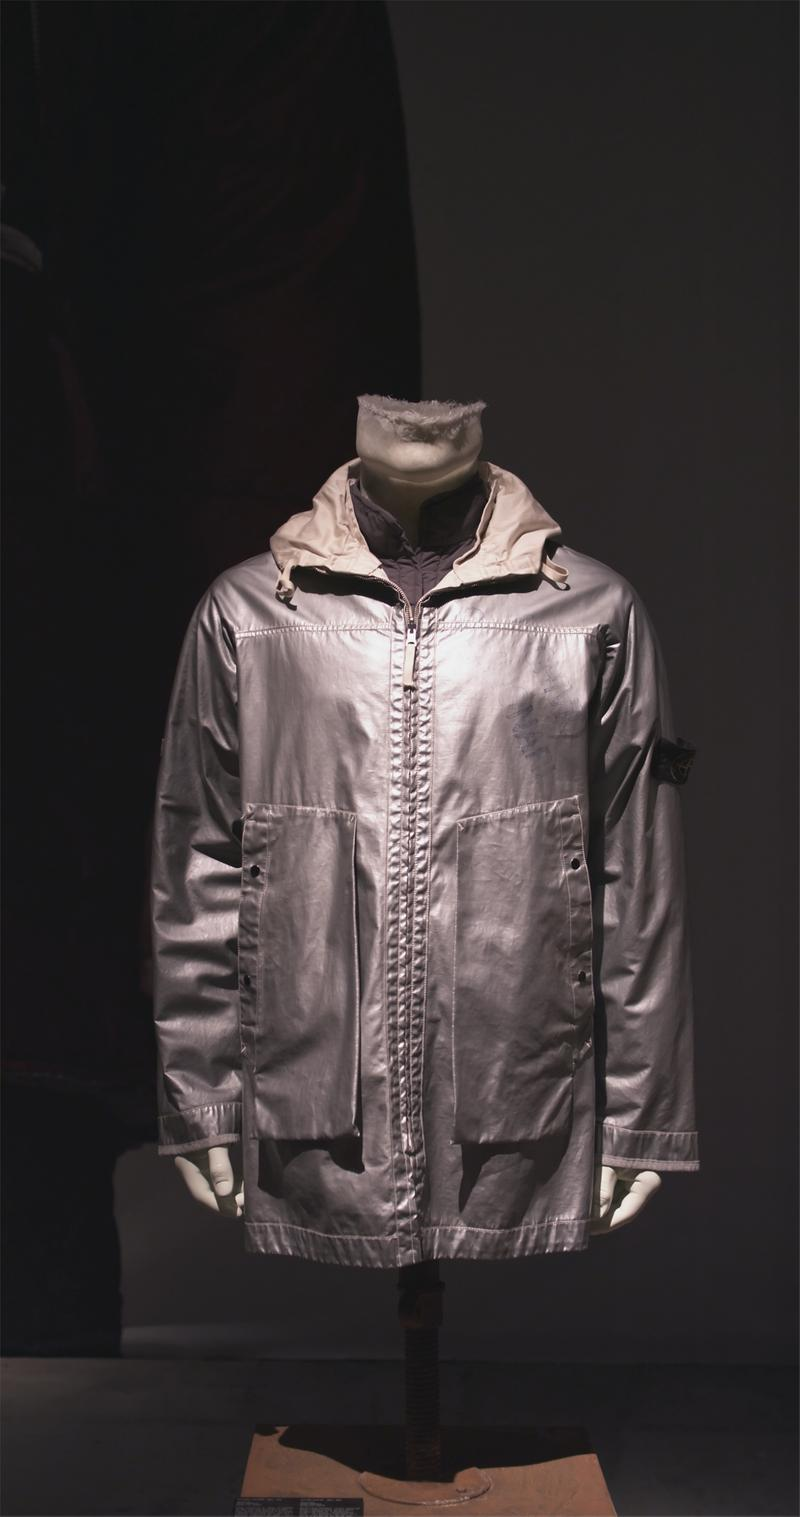 Shiny silver long hooded zip up jacket with side pockets, off white lining and Stone Island badge on left sleeve displayed on mannequin bust